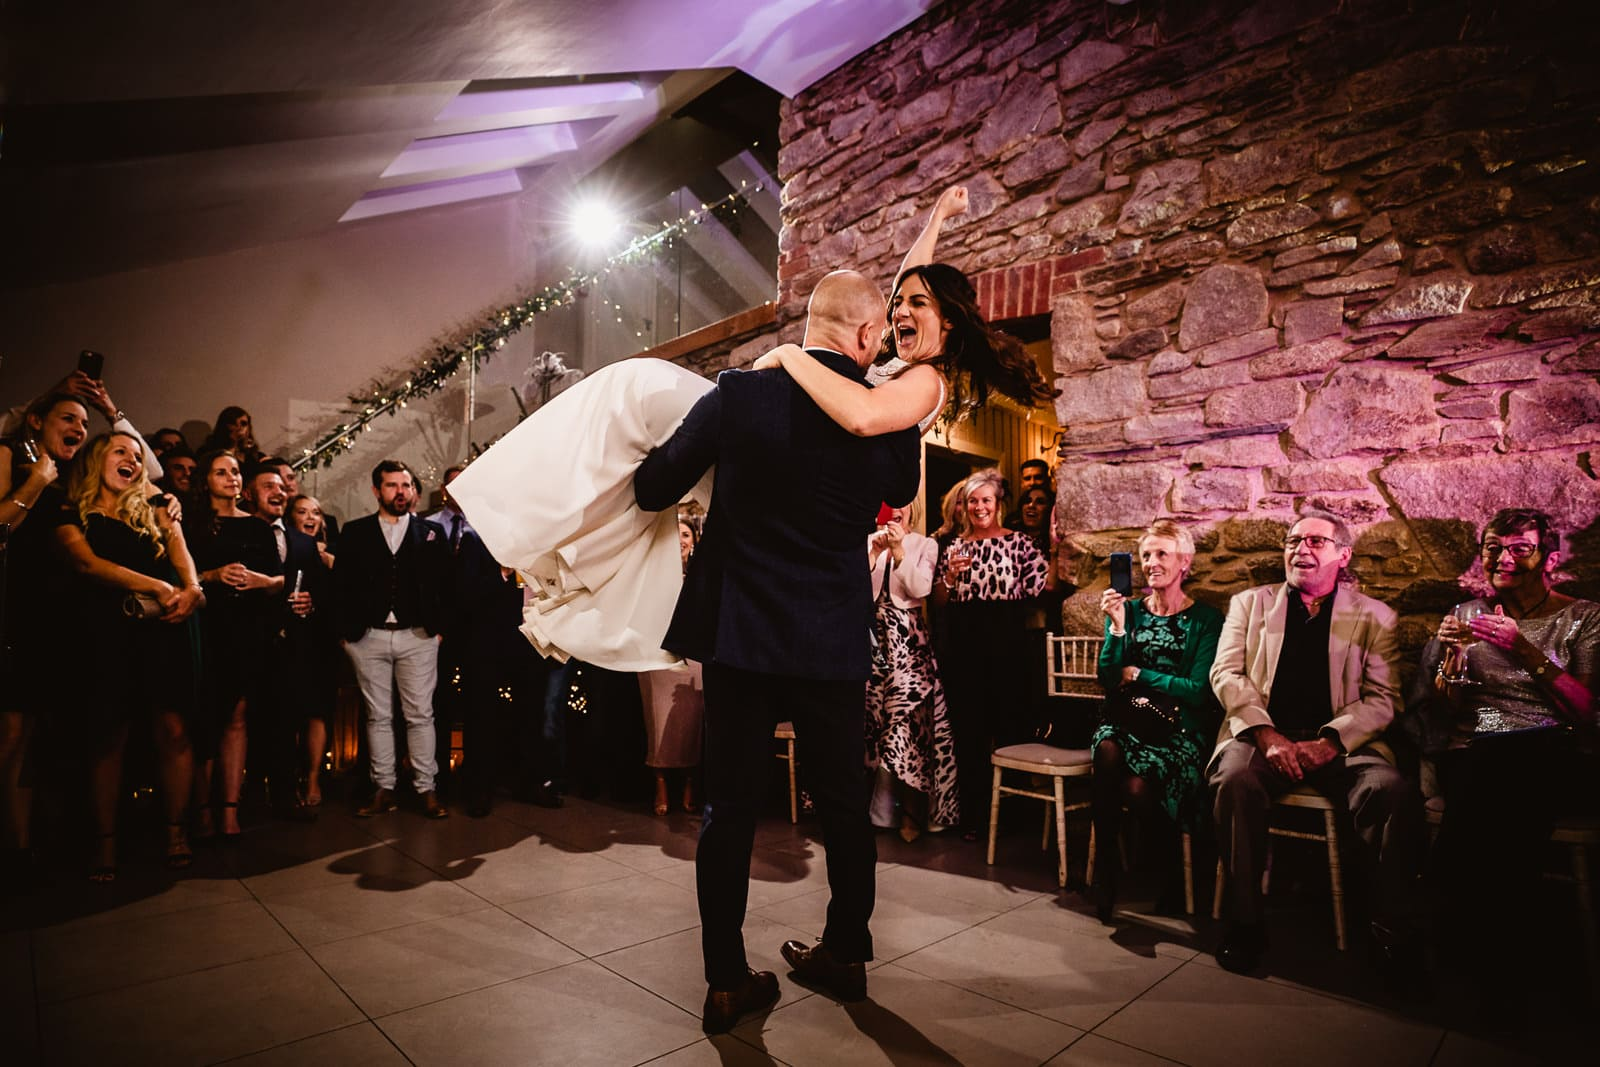 First Dance in the Threshing Barn at Trevenna Barns